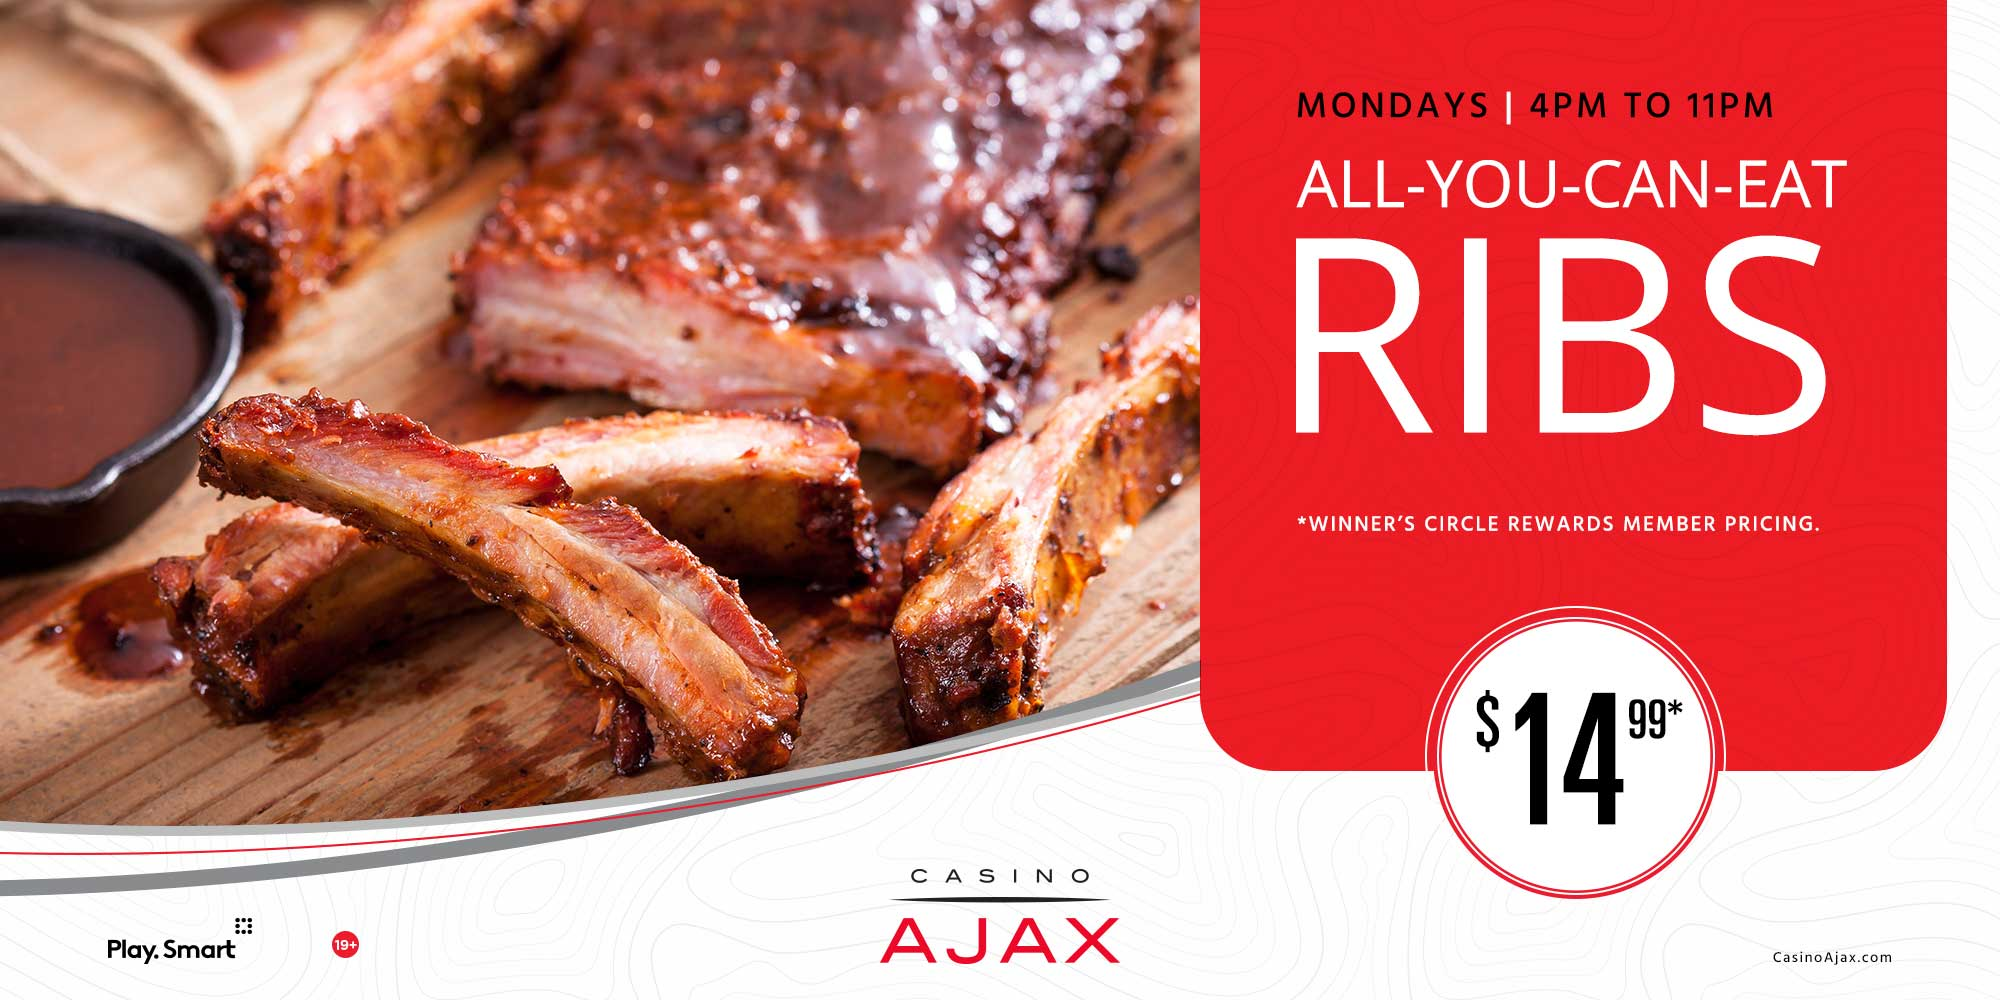 All-you-can-eat ribs